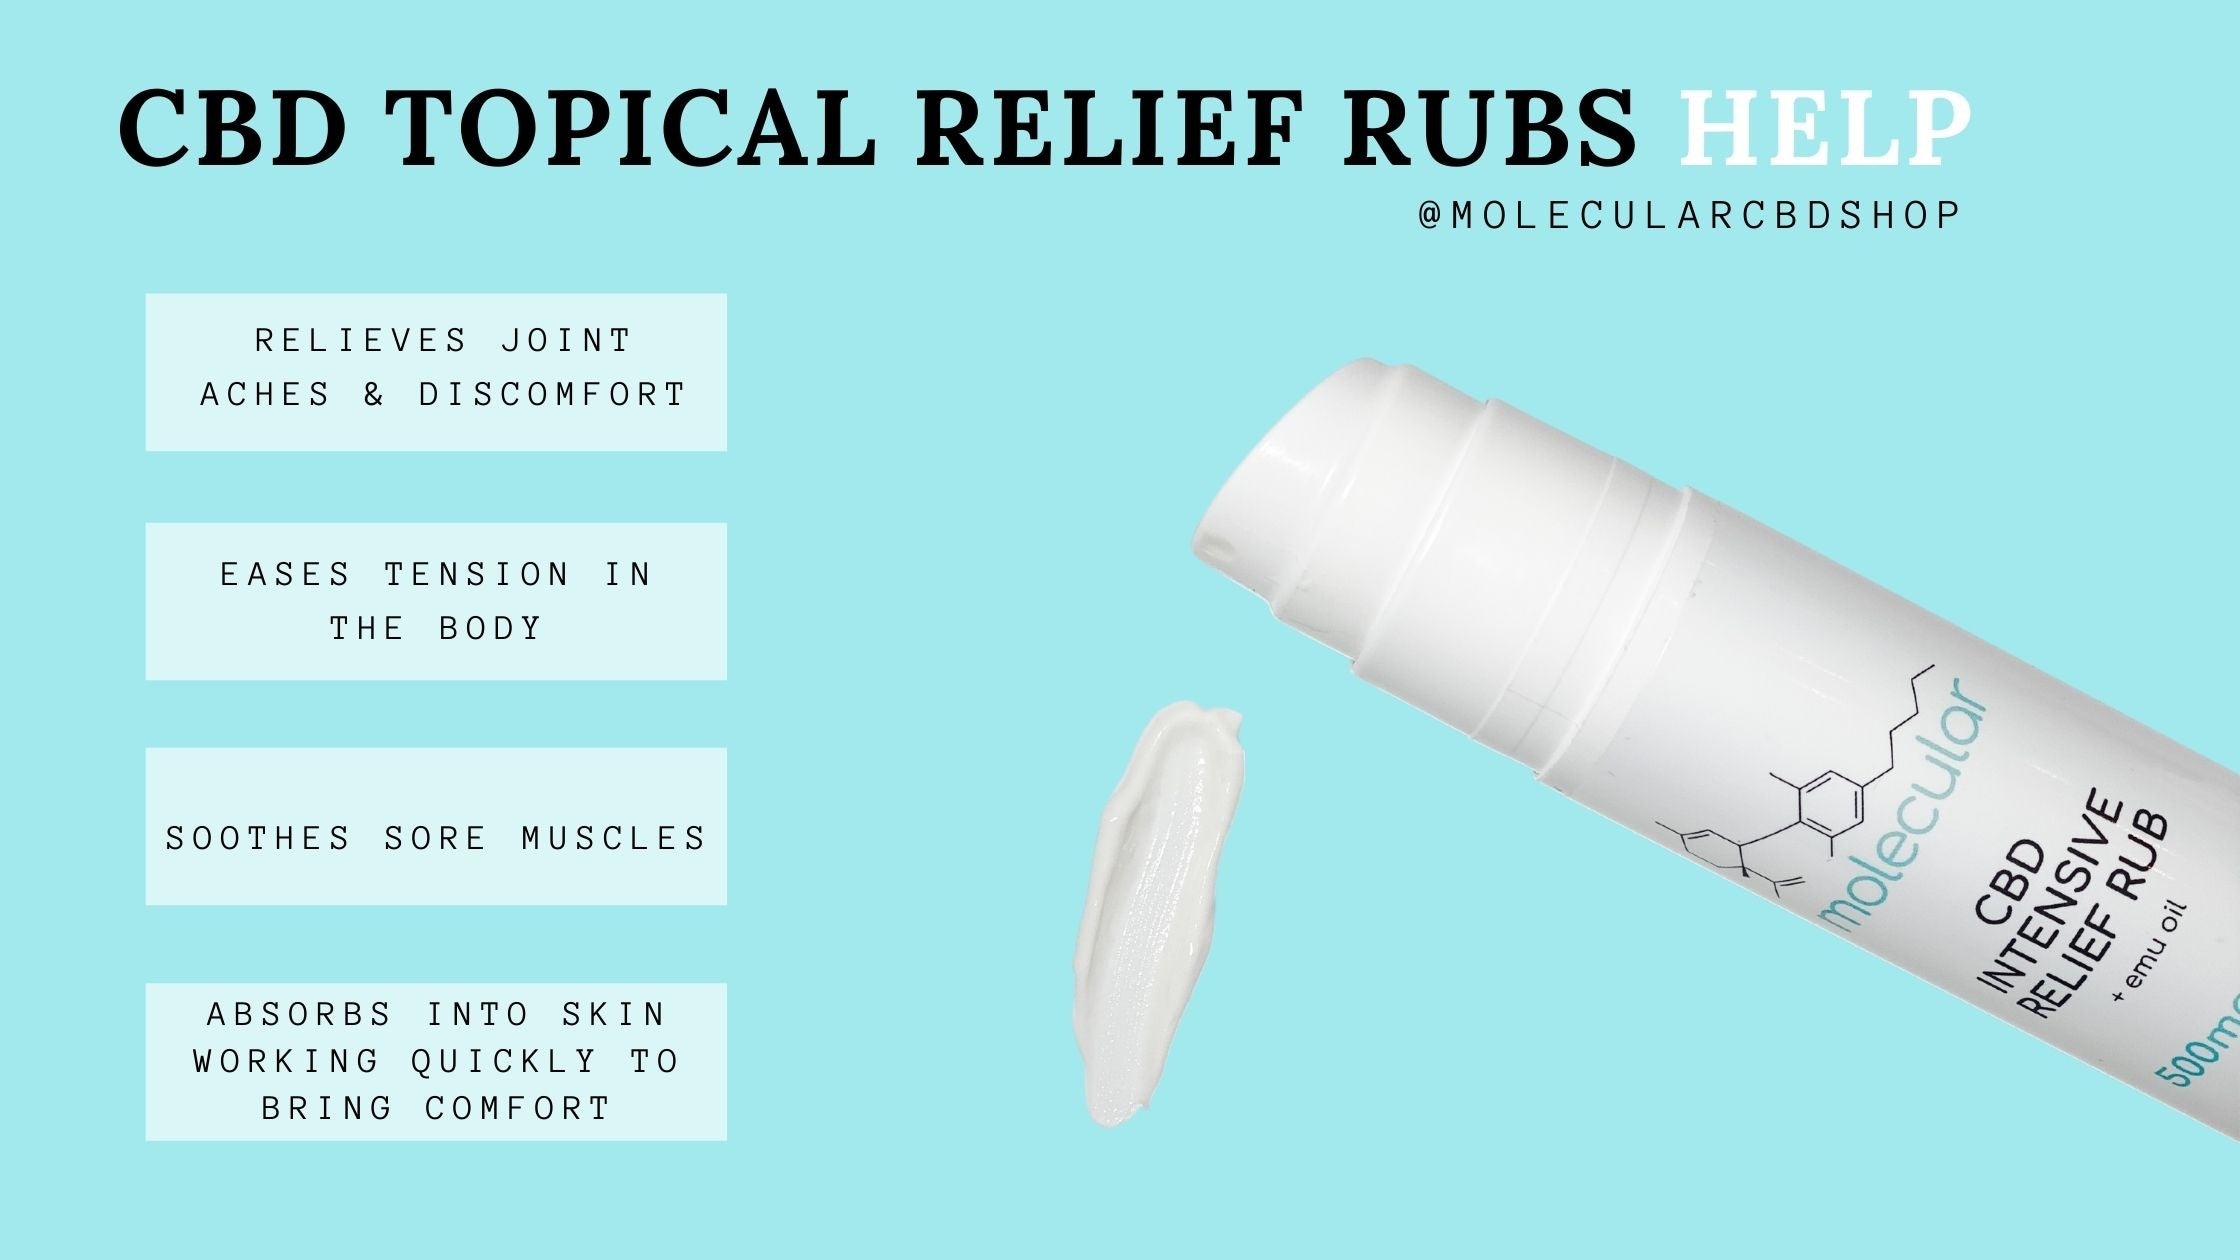 CBD Topical Relief Rub Helps with Pain and Inflammation